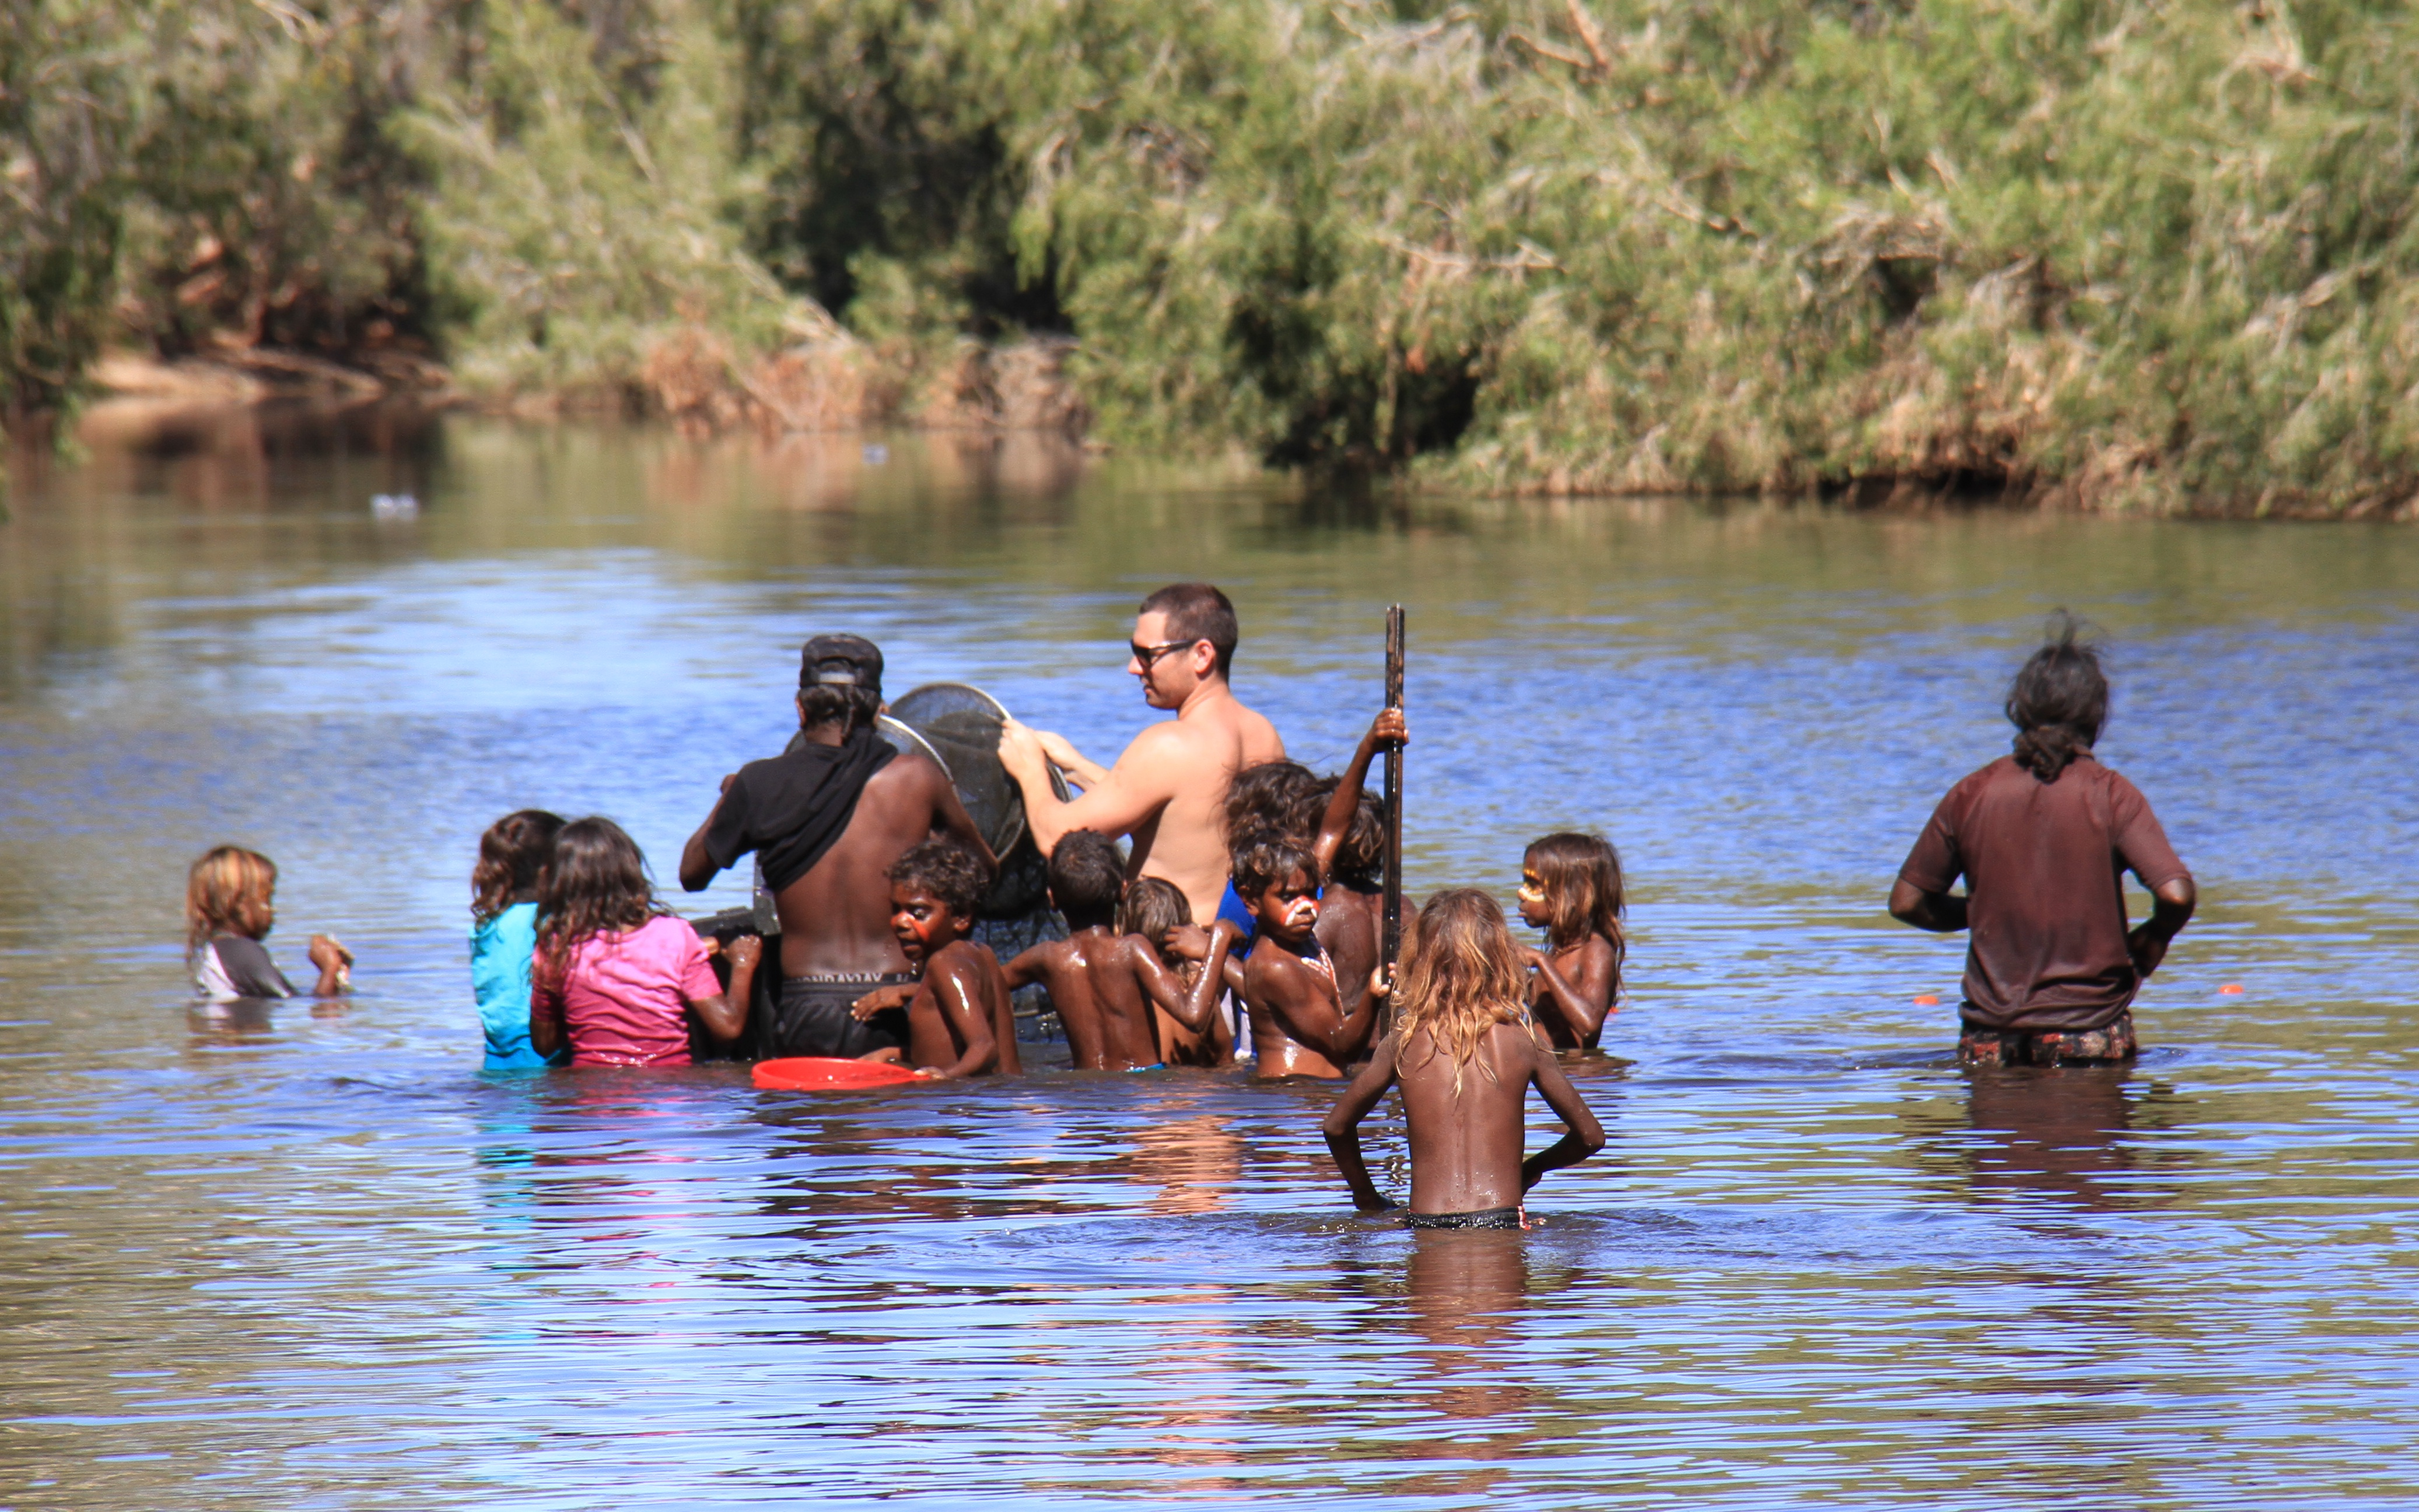 Warralong Fish Monitoring Project - Students in the Coongan River checking Fyke nets.